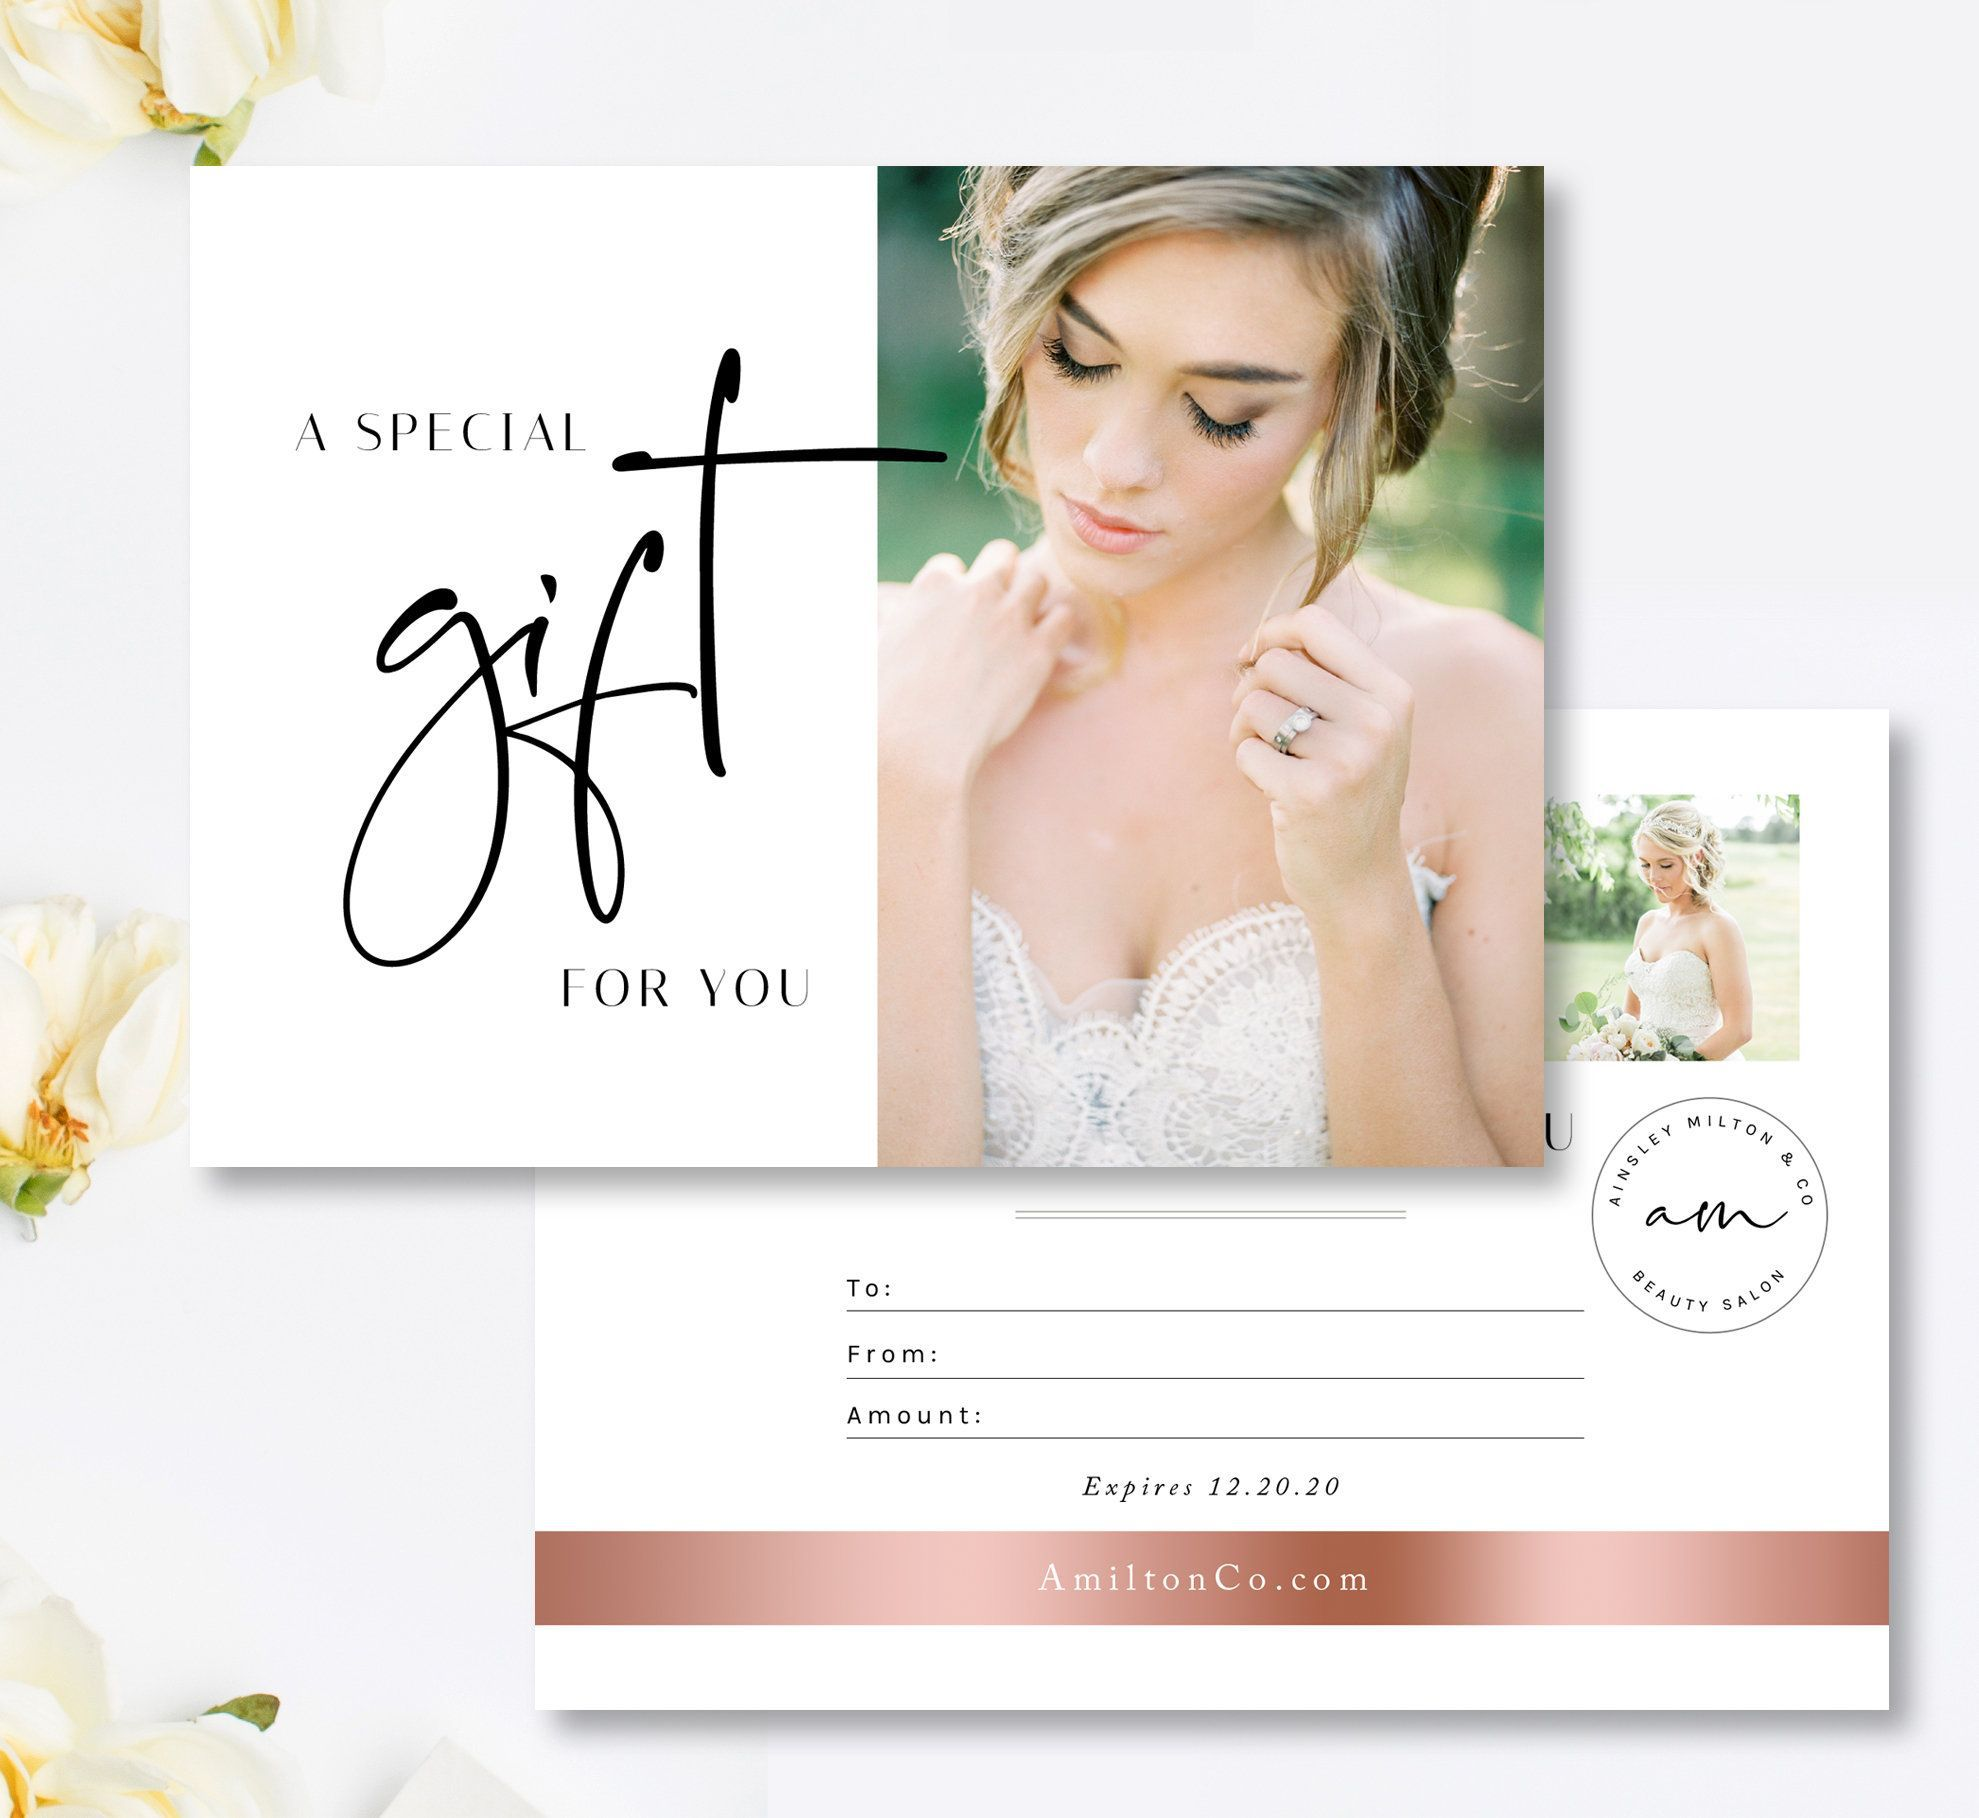 001 Magnificent Salon Gift Certificate Template High Def